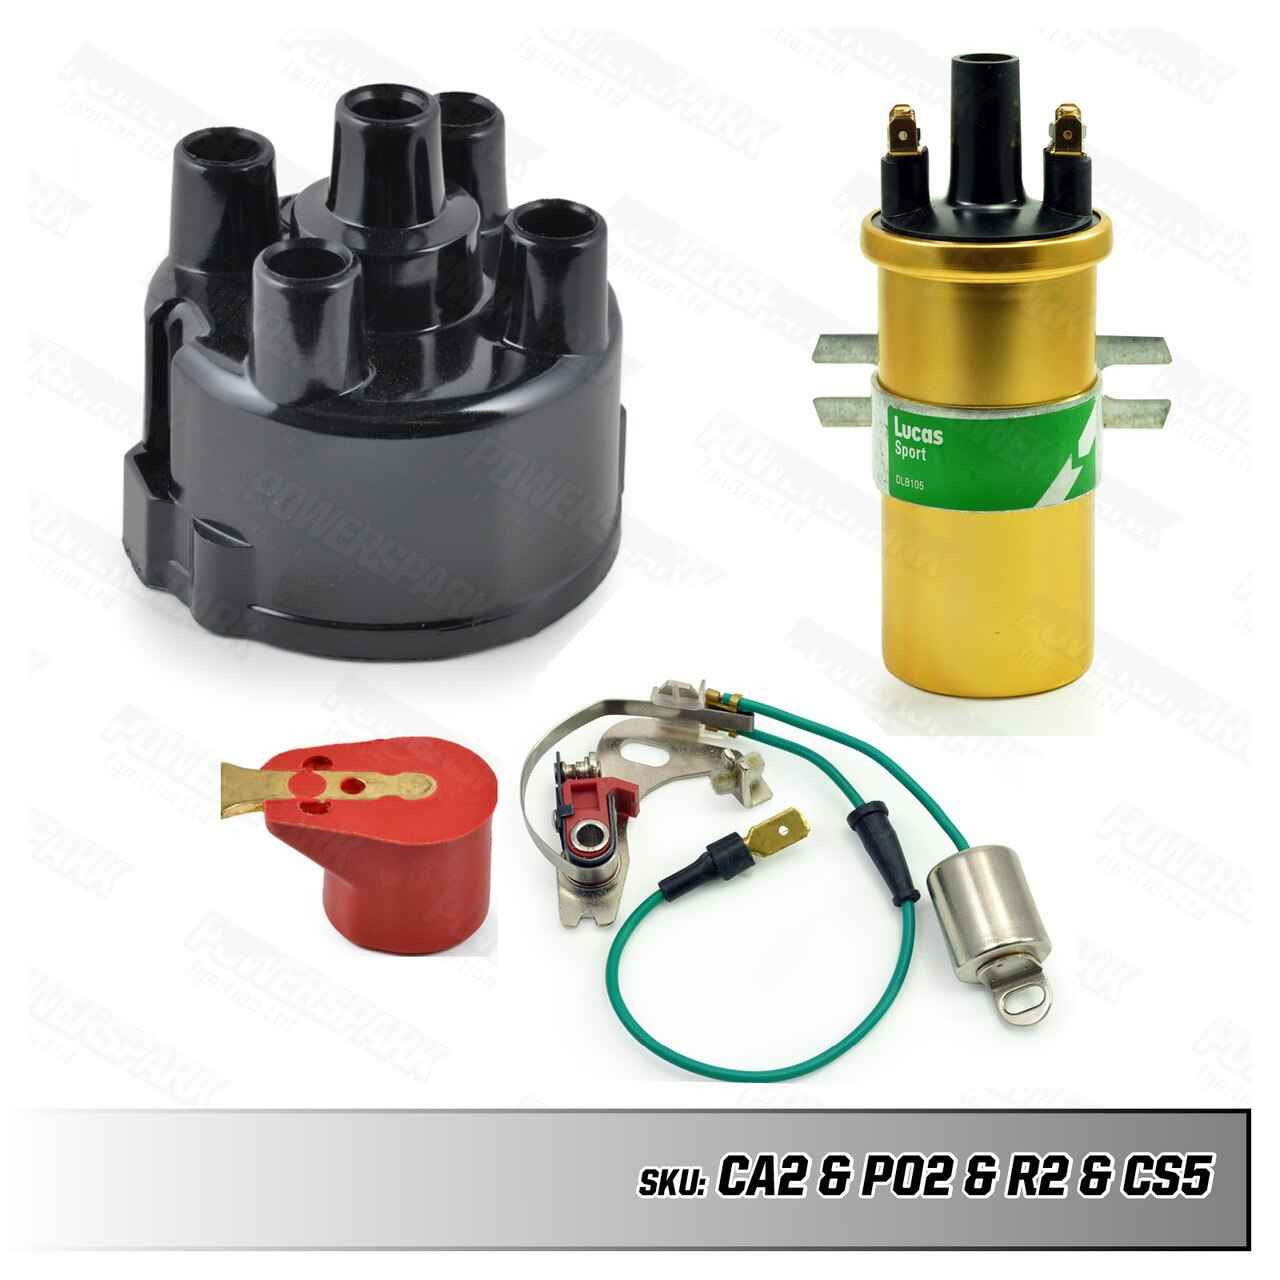 Lucas Lucas 45D Distributor Service Kit with Ignition Coil